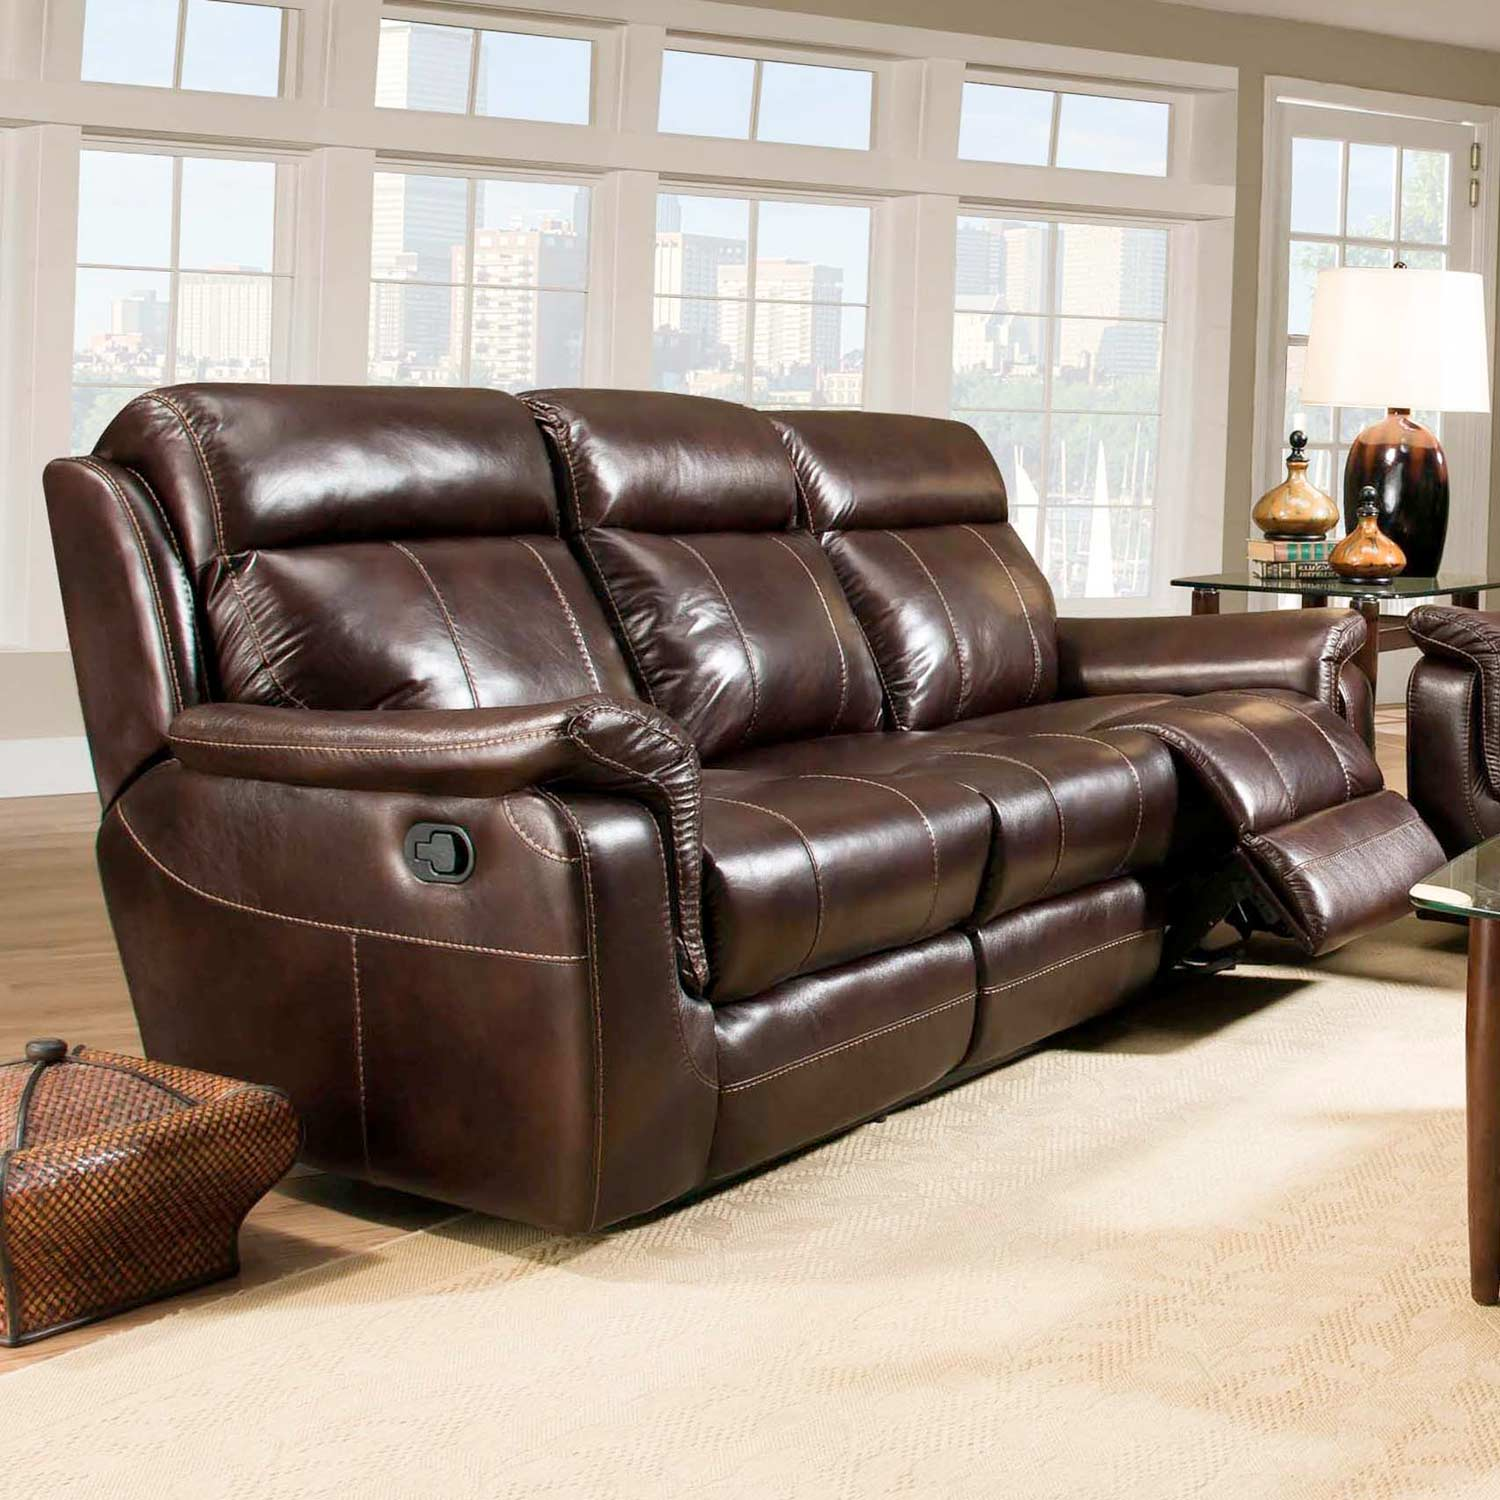 Sequoia Recliner Sofa - Contrast Stitching, Lowey Tobacco